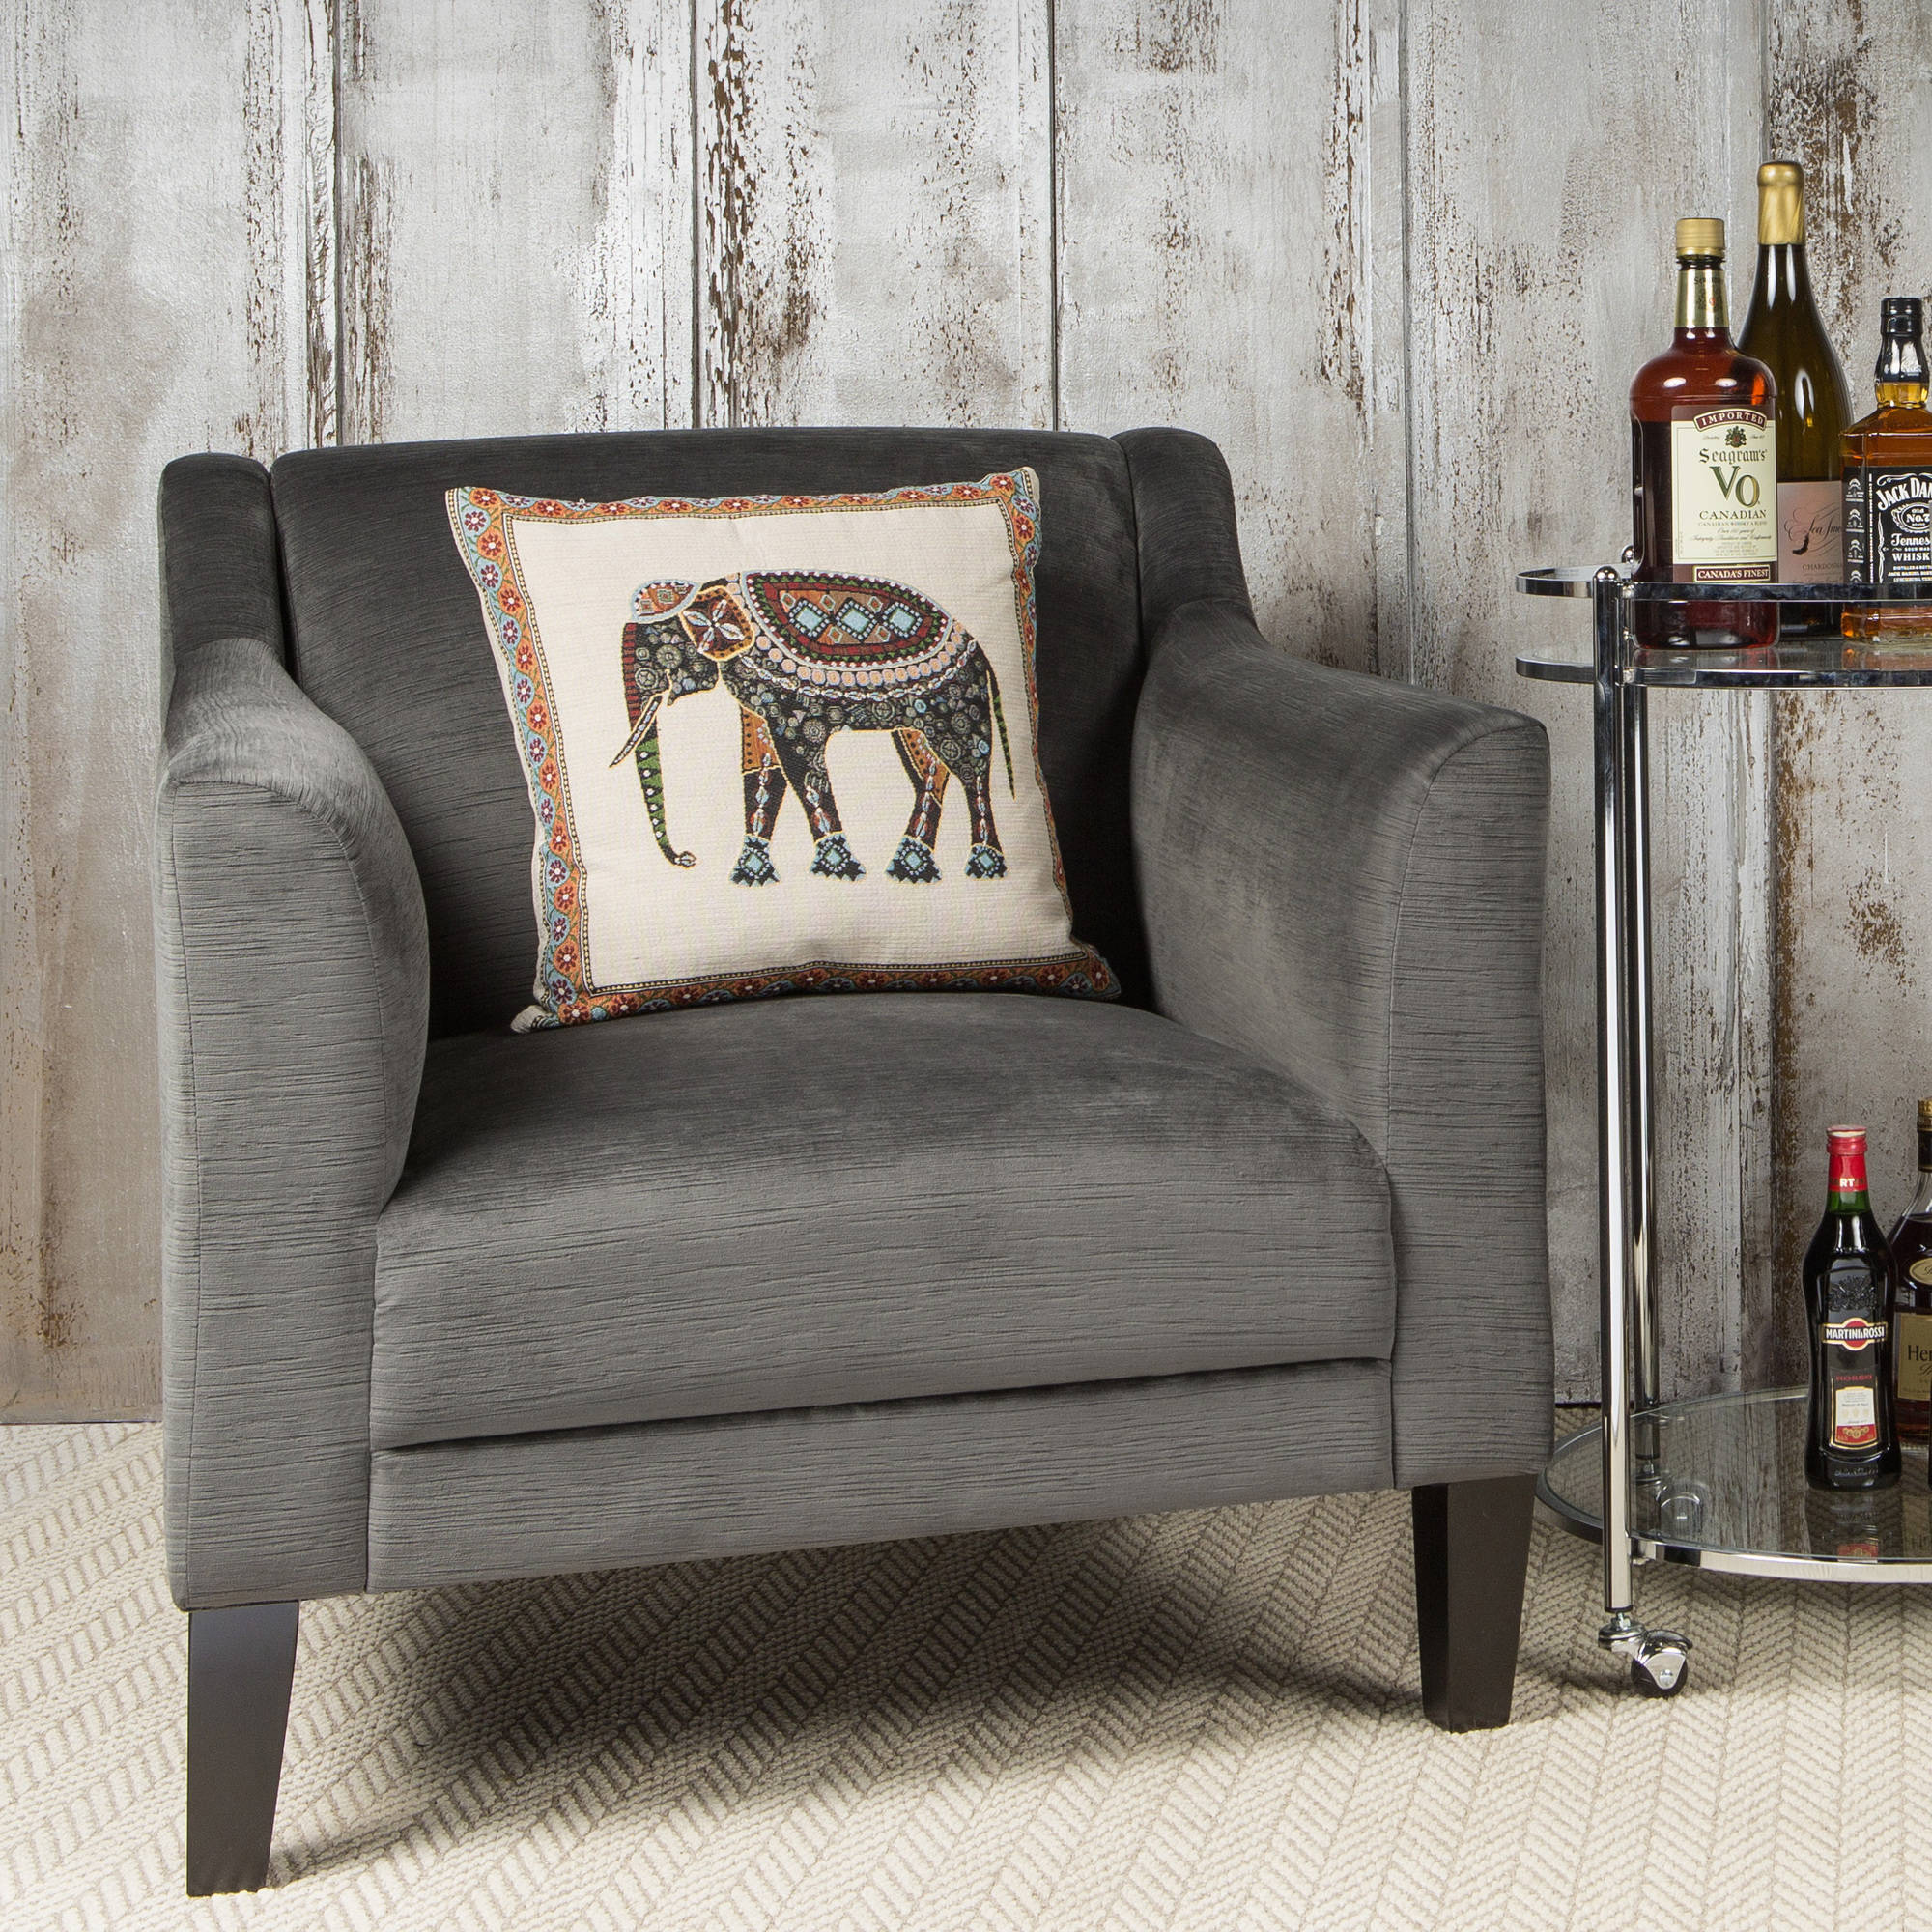 Studio Designs Home Grotto Arm Chair, Charcoal and Stone